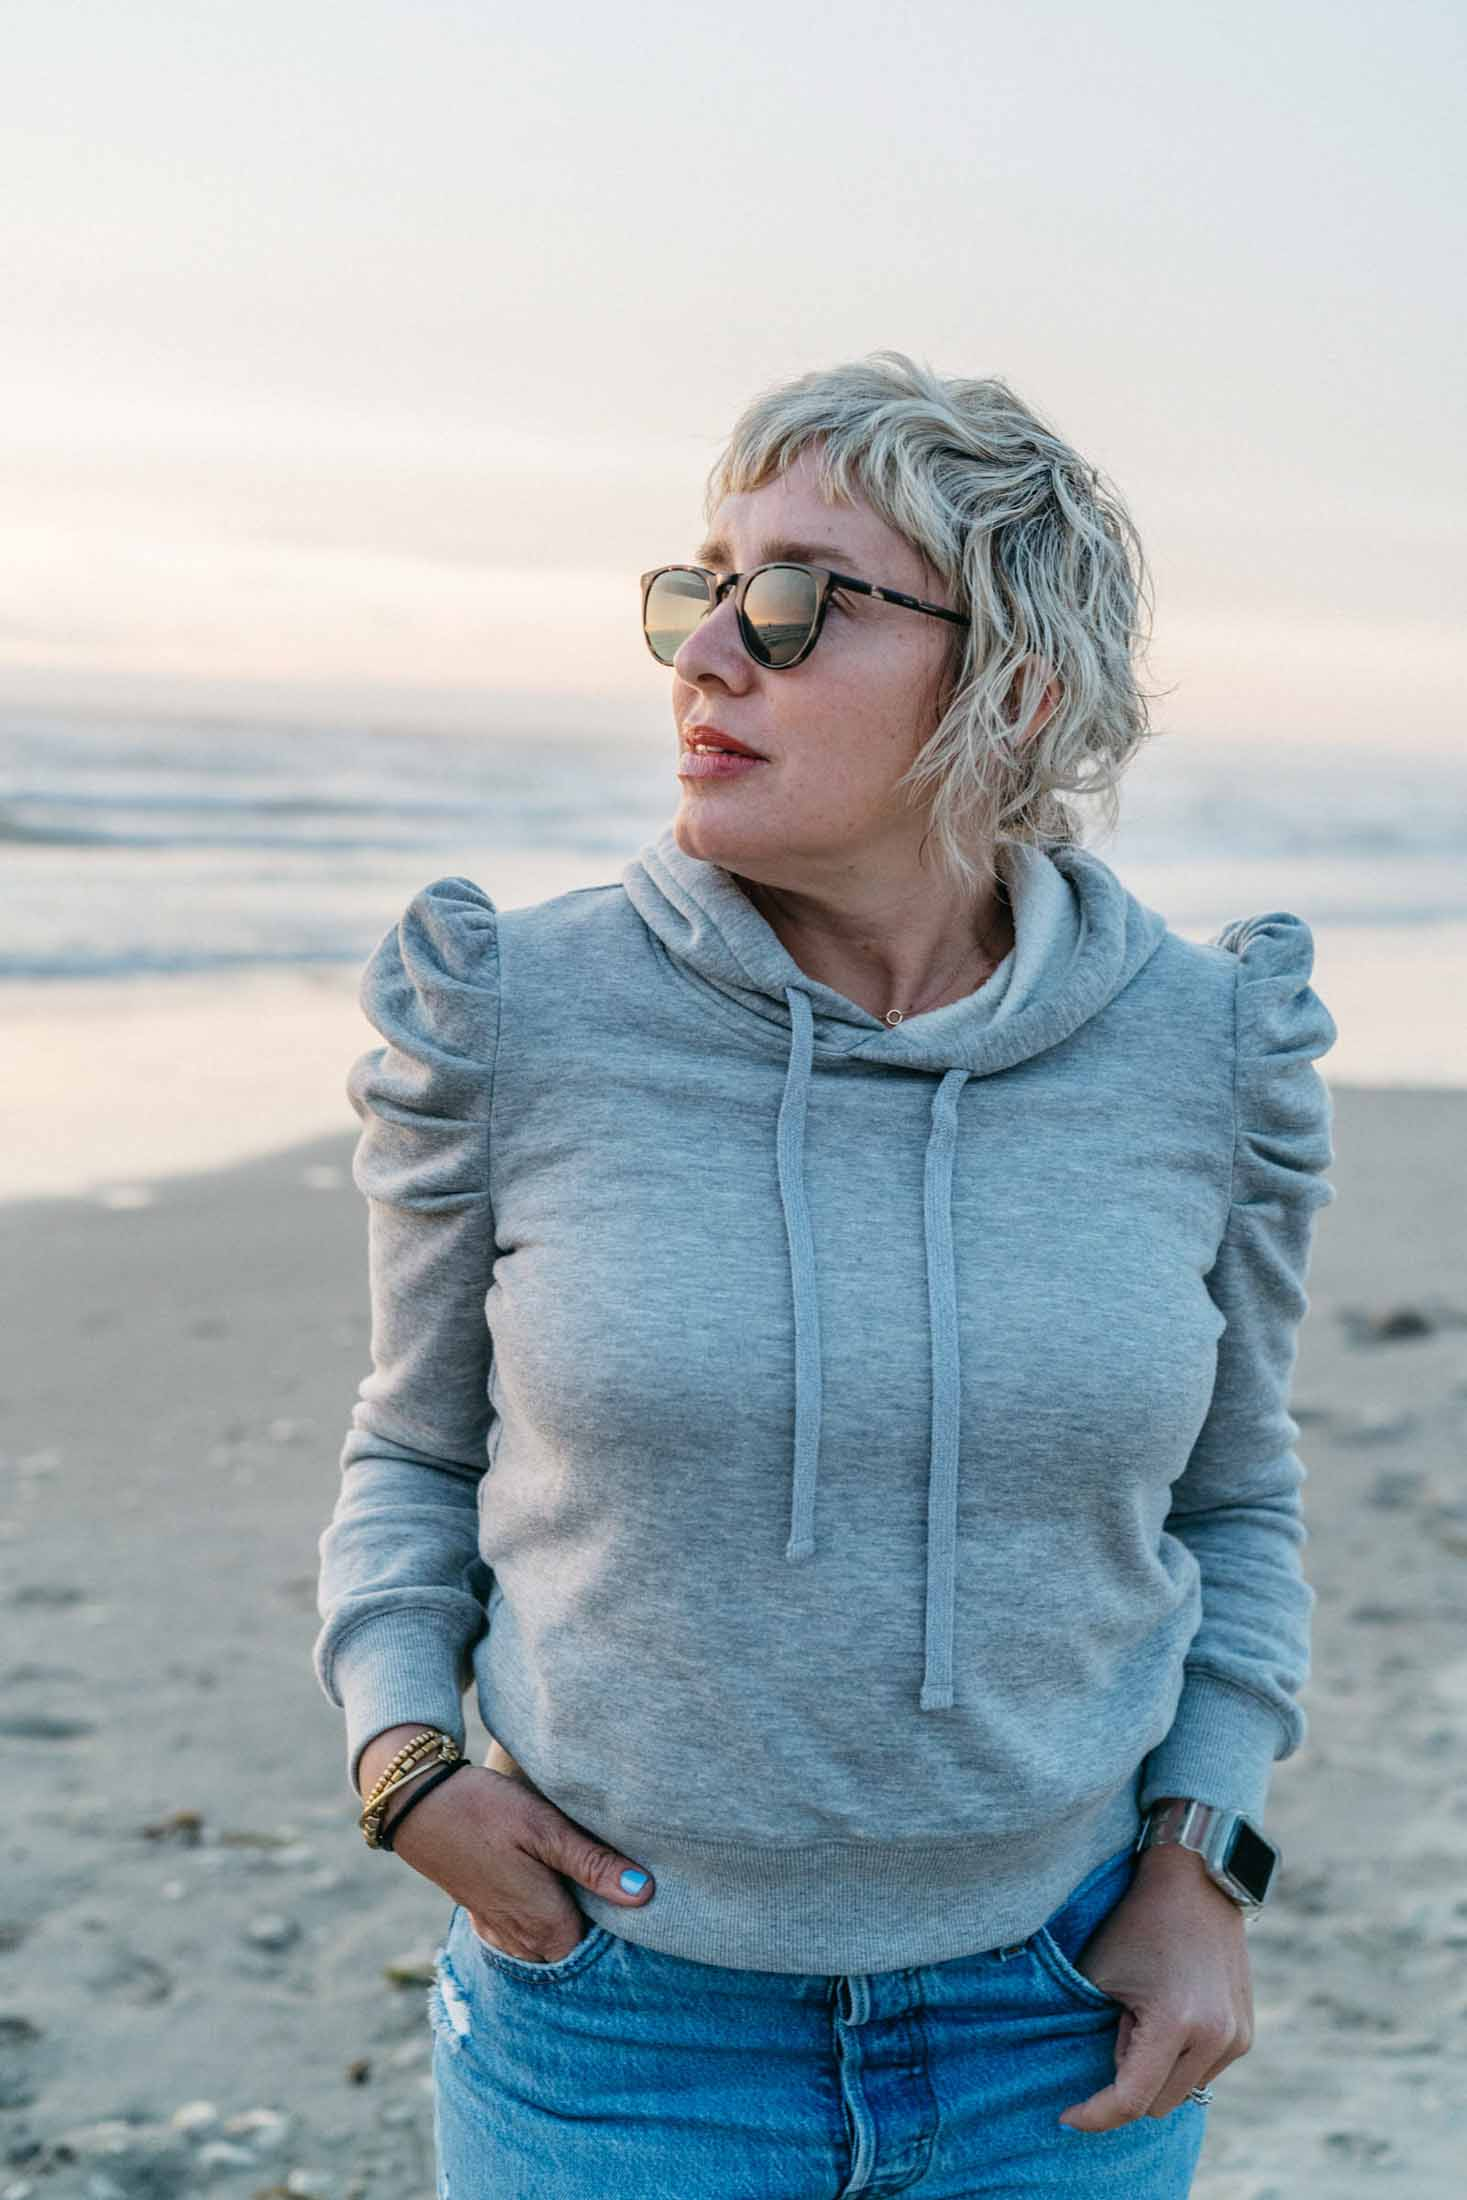 And I really mean heathered gray sweatshirts, ribbed gray sweaters, cool over-dyed gray tops. Spoiler alert: There are zero plain gray tees in this post.